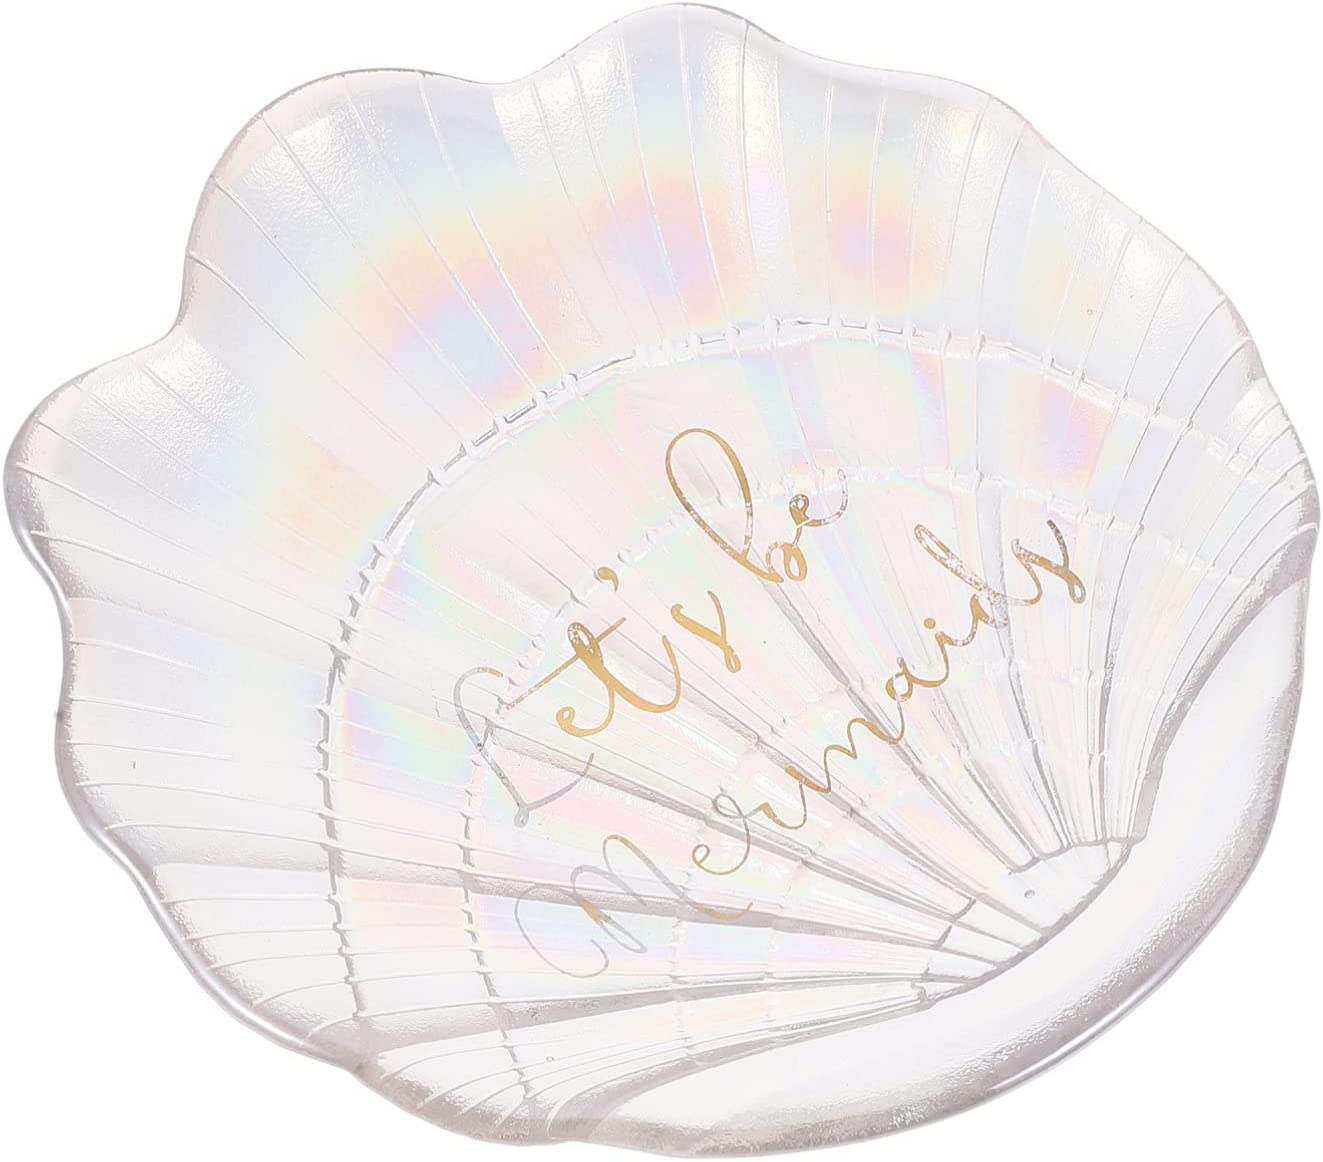 Cabilock Glass Jewelry Tray Decorative Shell safety Appetizer Ranking TOP19 Plate Sea